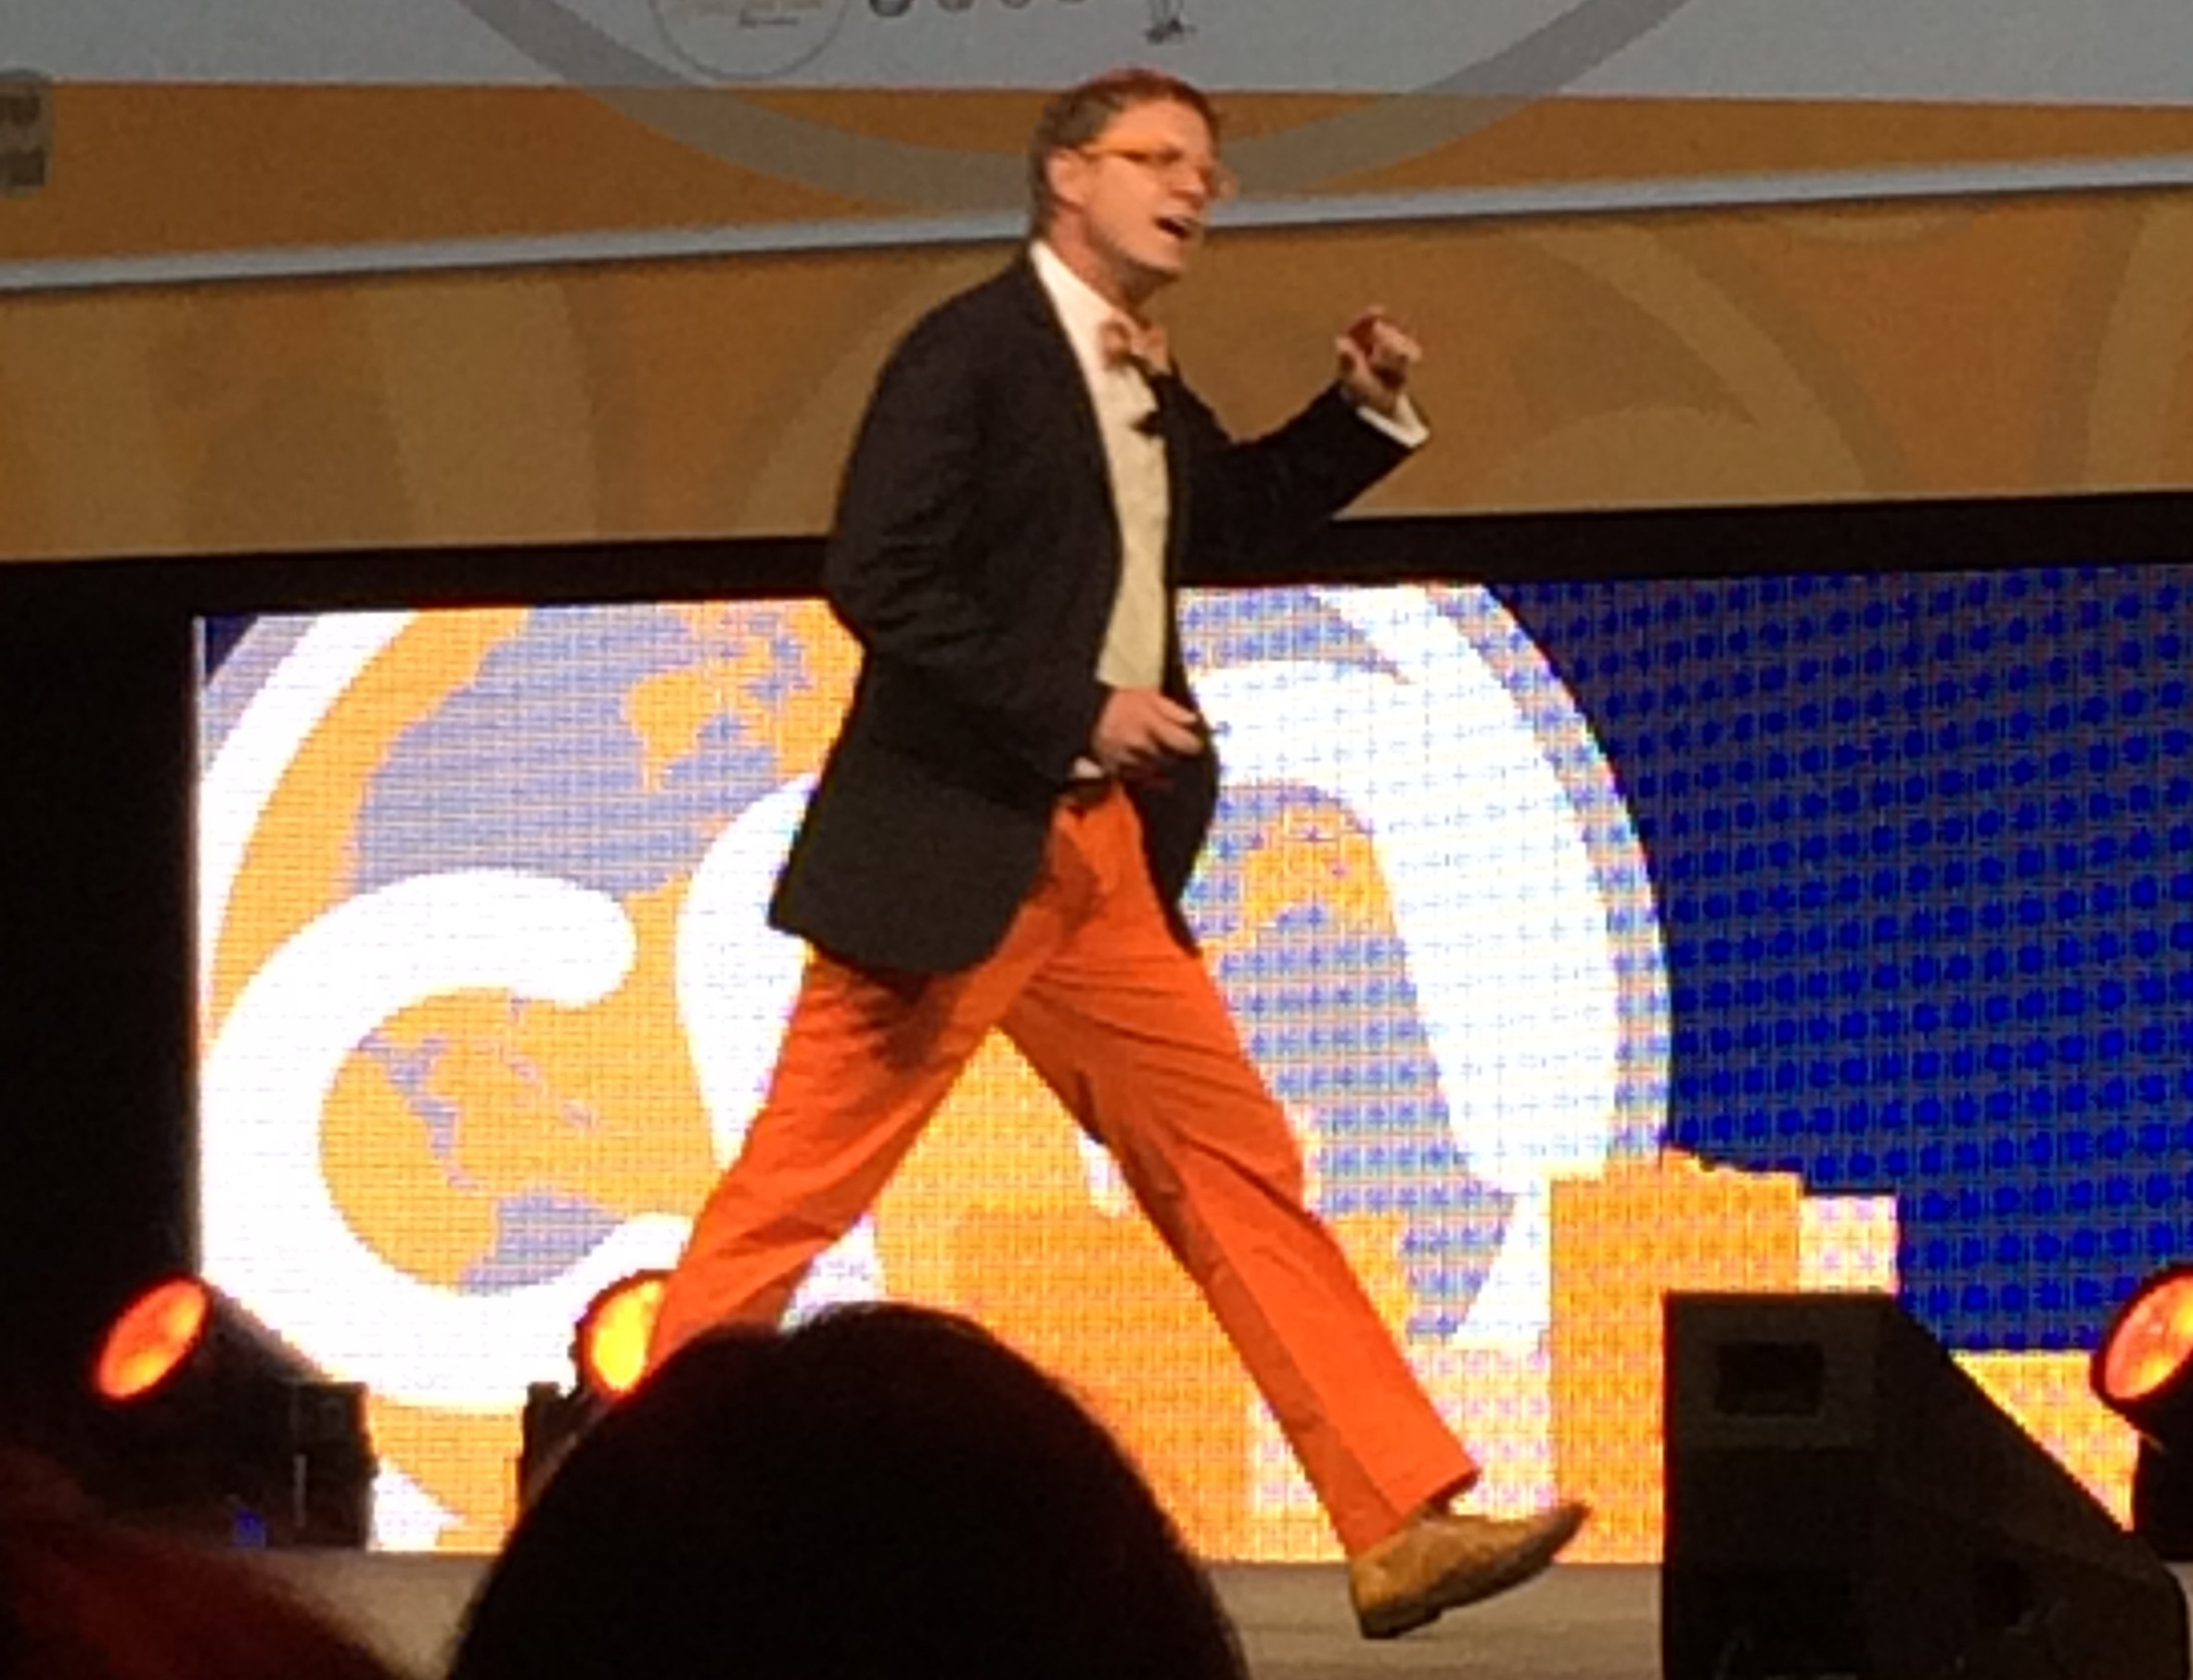 Andrew Davis on Stage at Content Marketing World 2014